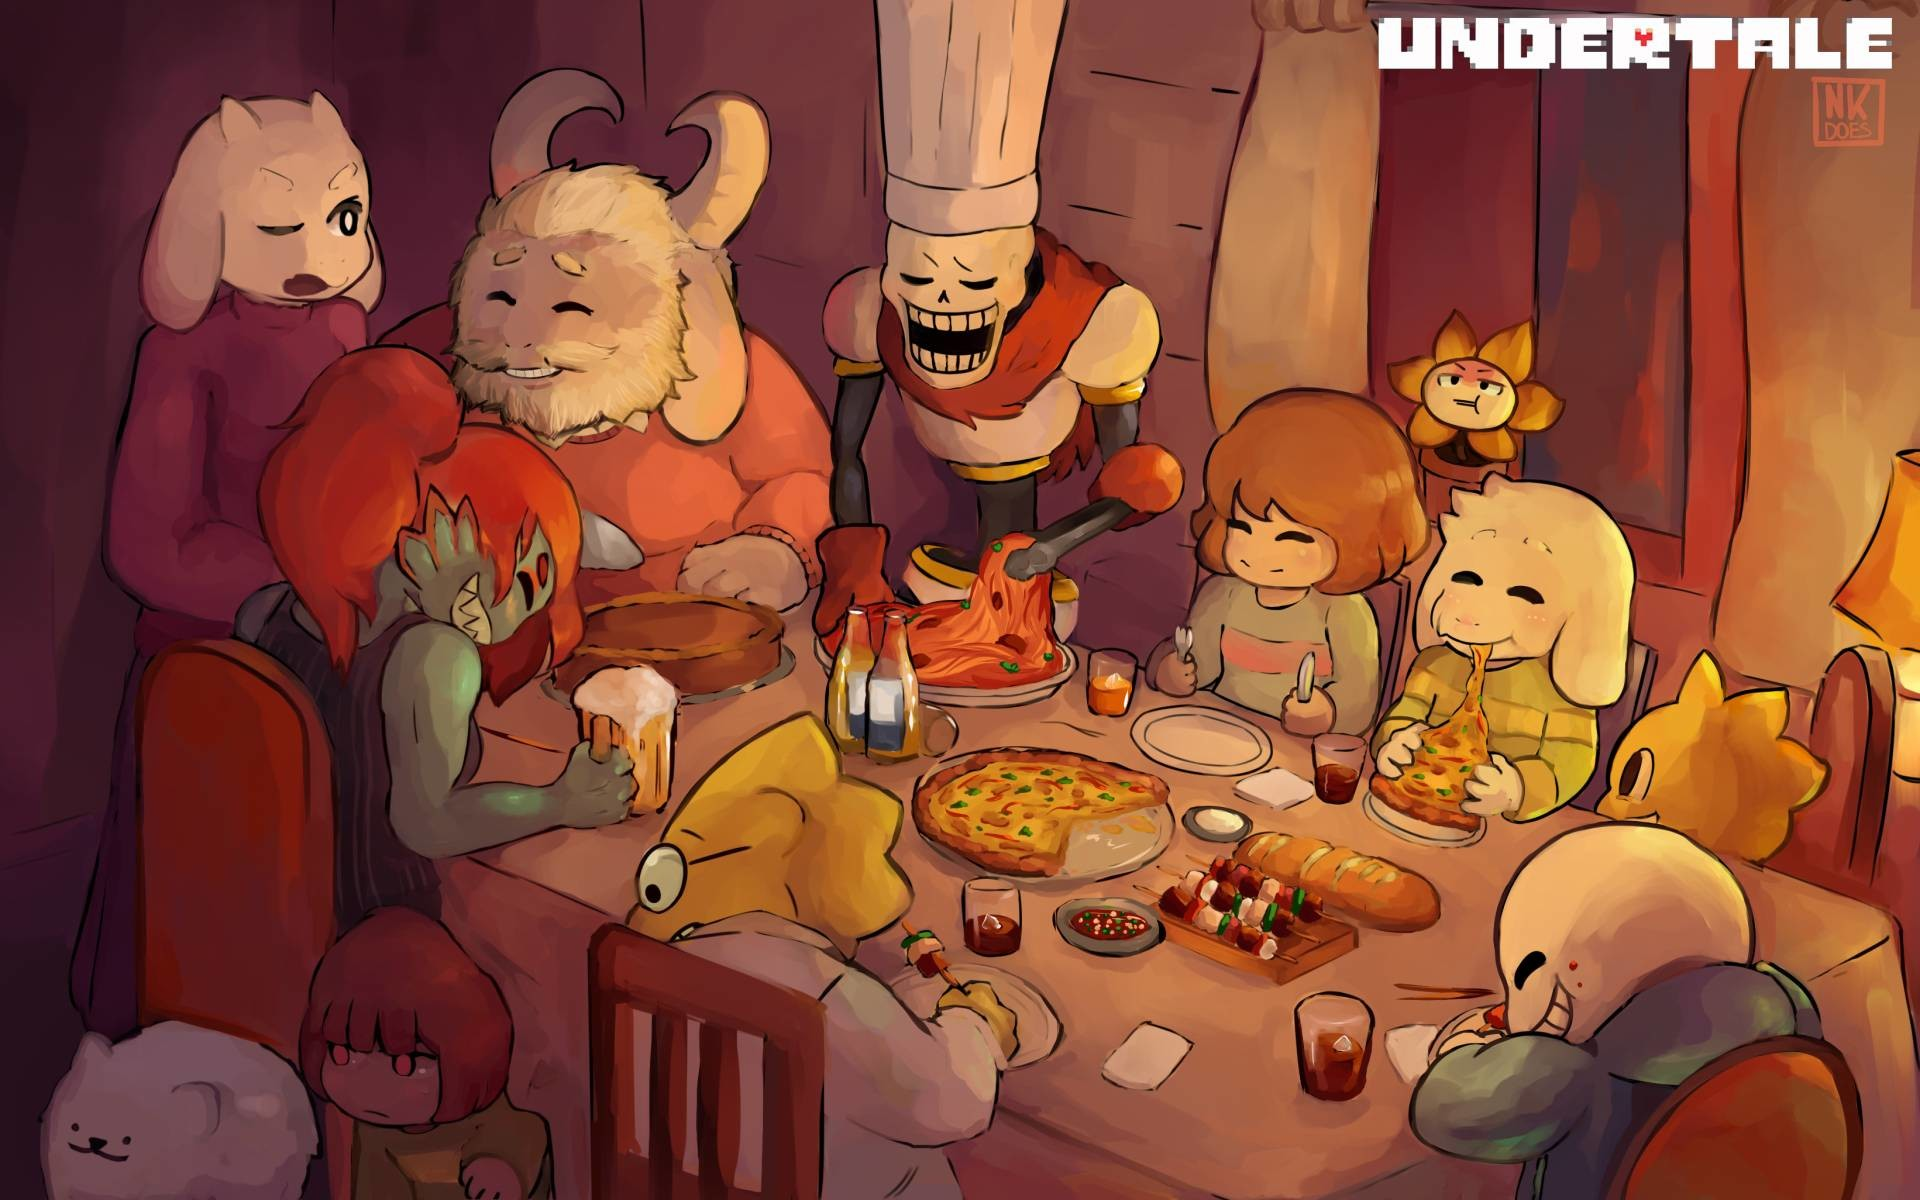 1920x1200 QWH688: Cute Undertale Wallpaper, Awesome Undertale Backgrounds .